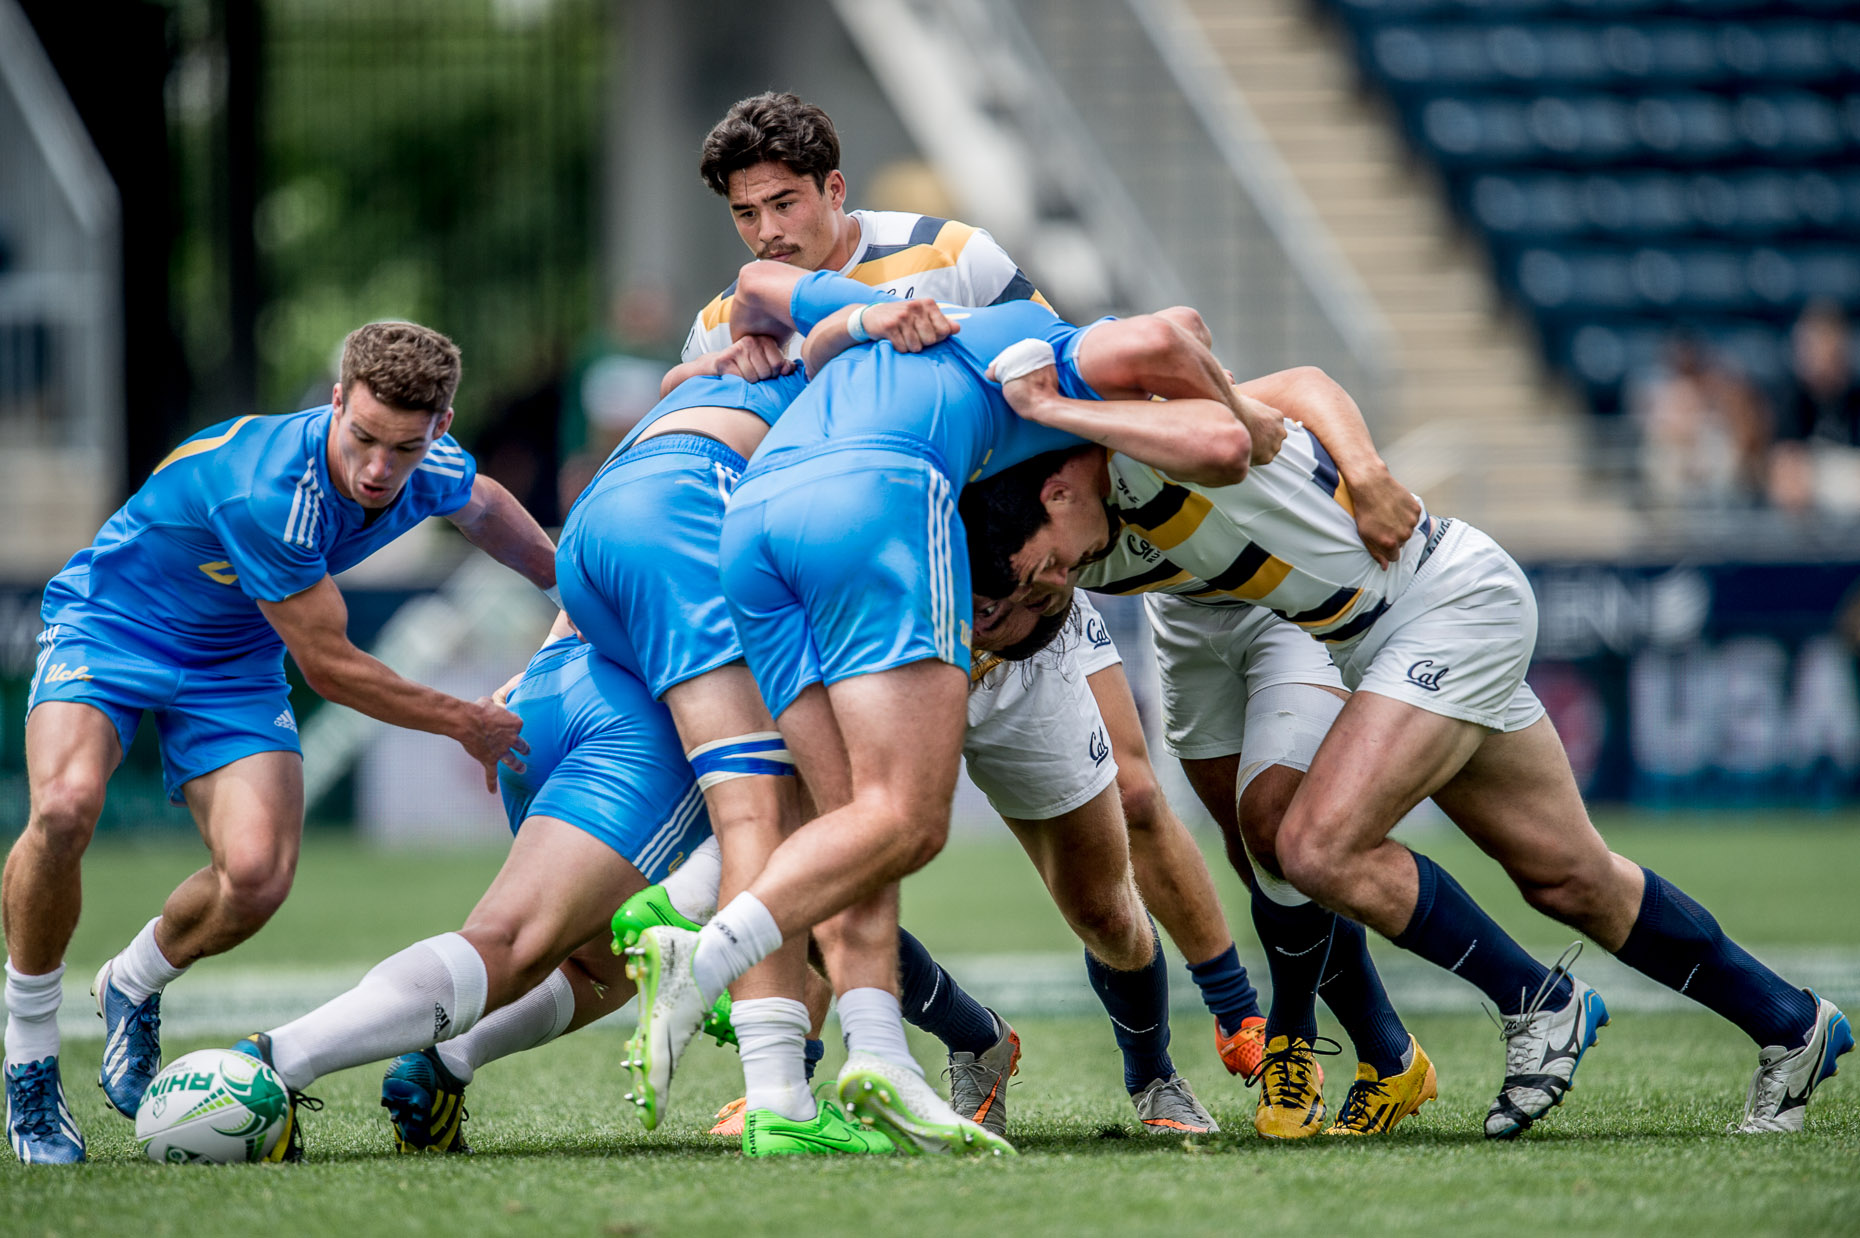 rugby scrum philly | commercial photographer dave moser